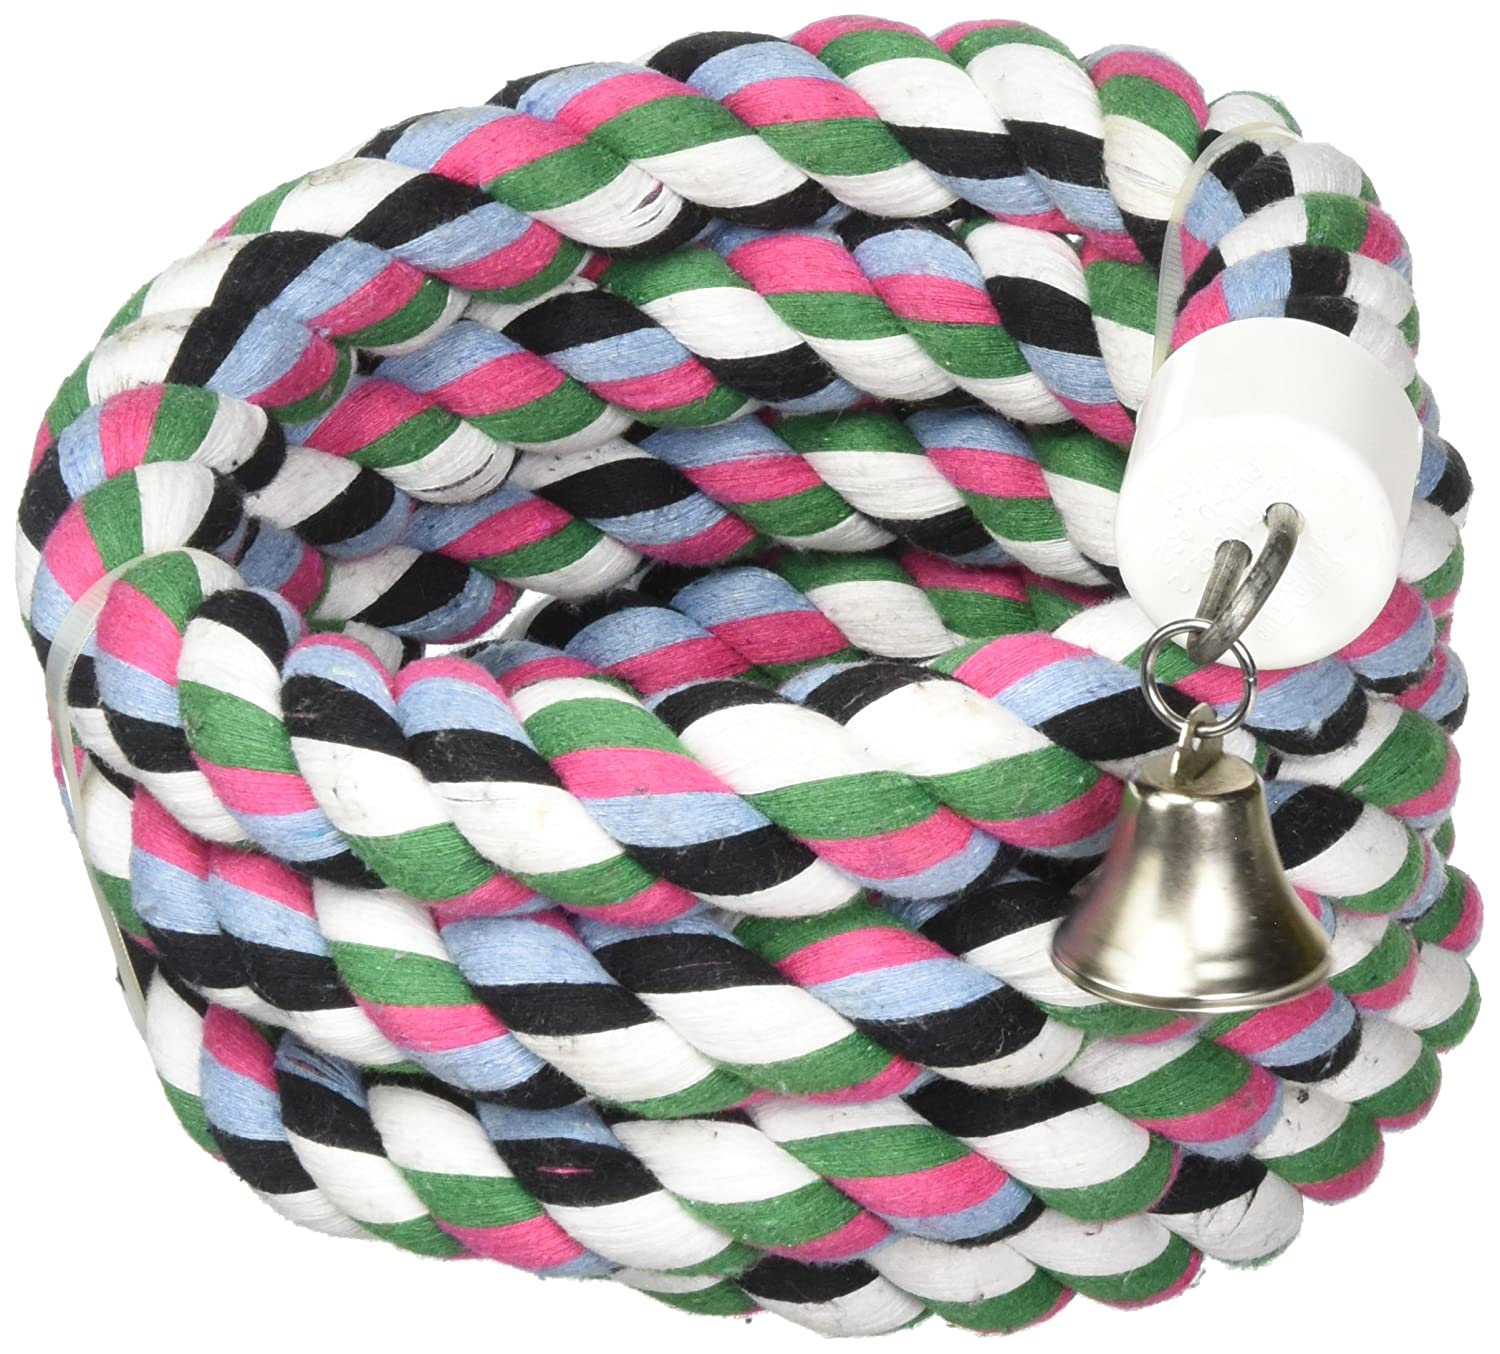 A&E Cage Company 001348 Happy Beaks Cotton Rope boing with Bell Bird Toy multicolore, 1.25 x 97 in